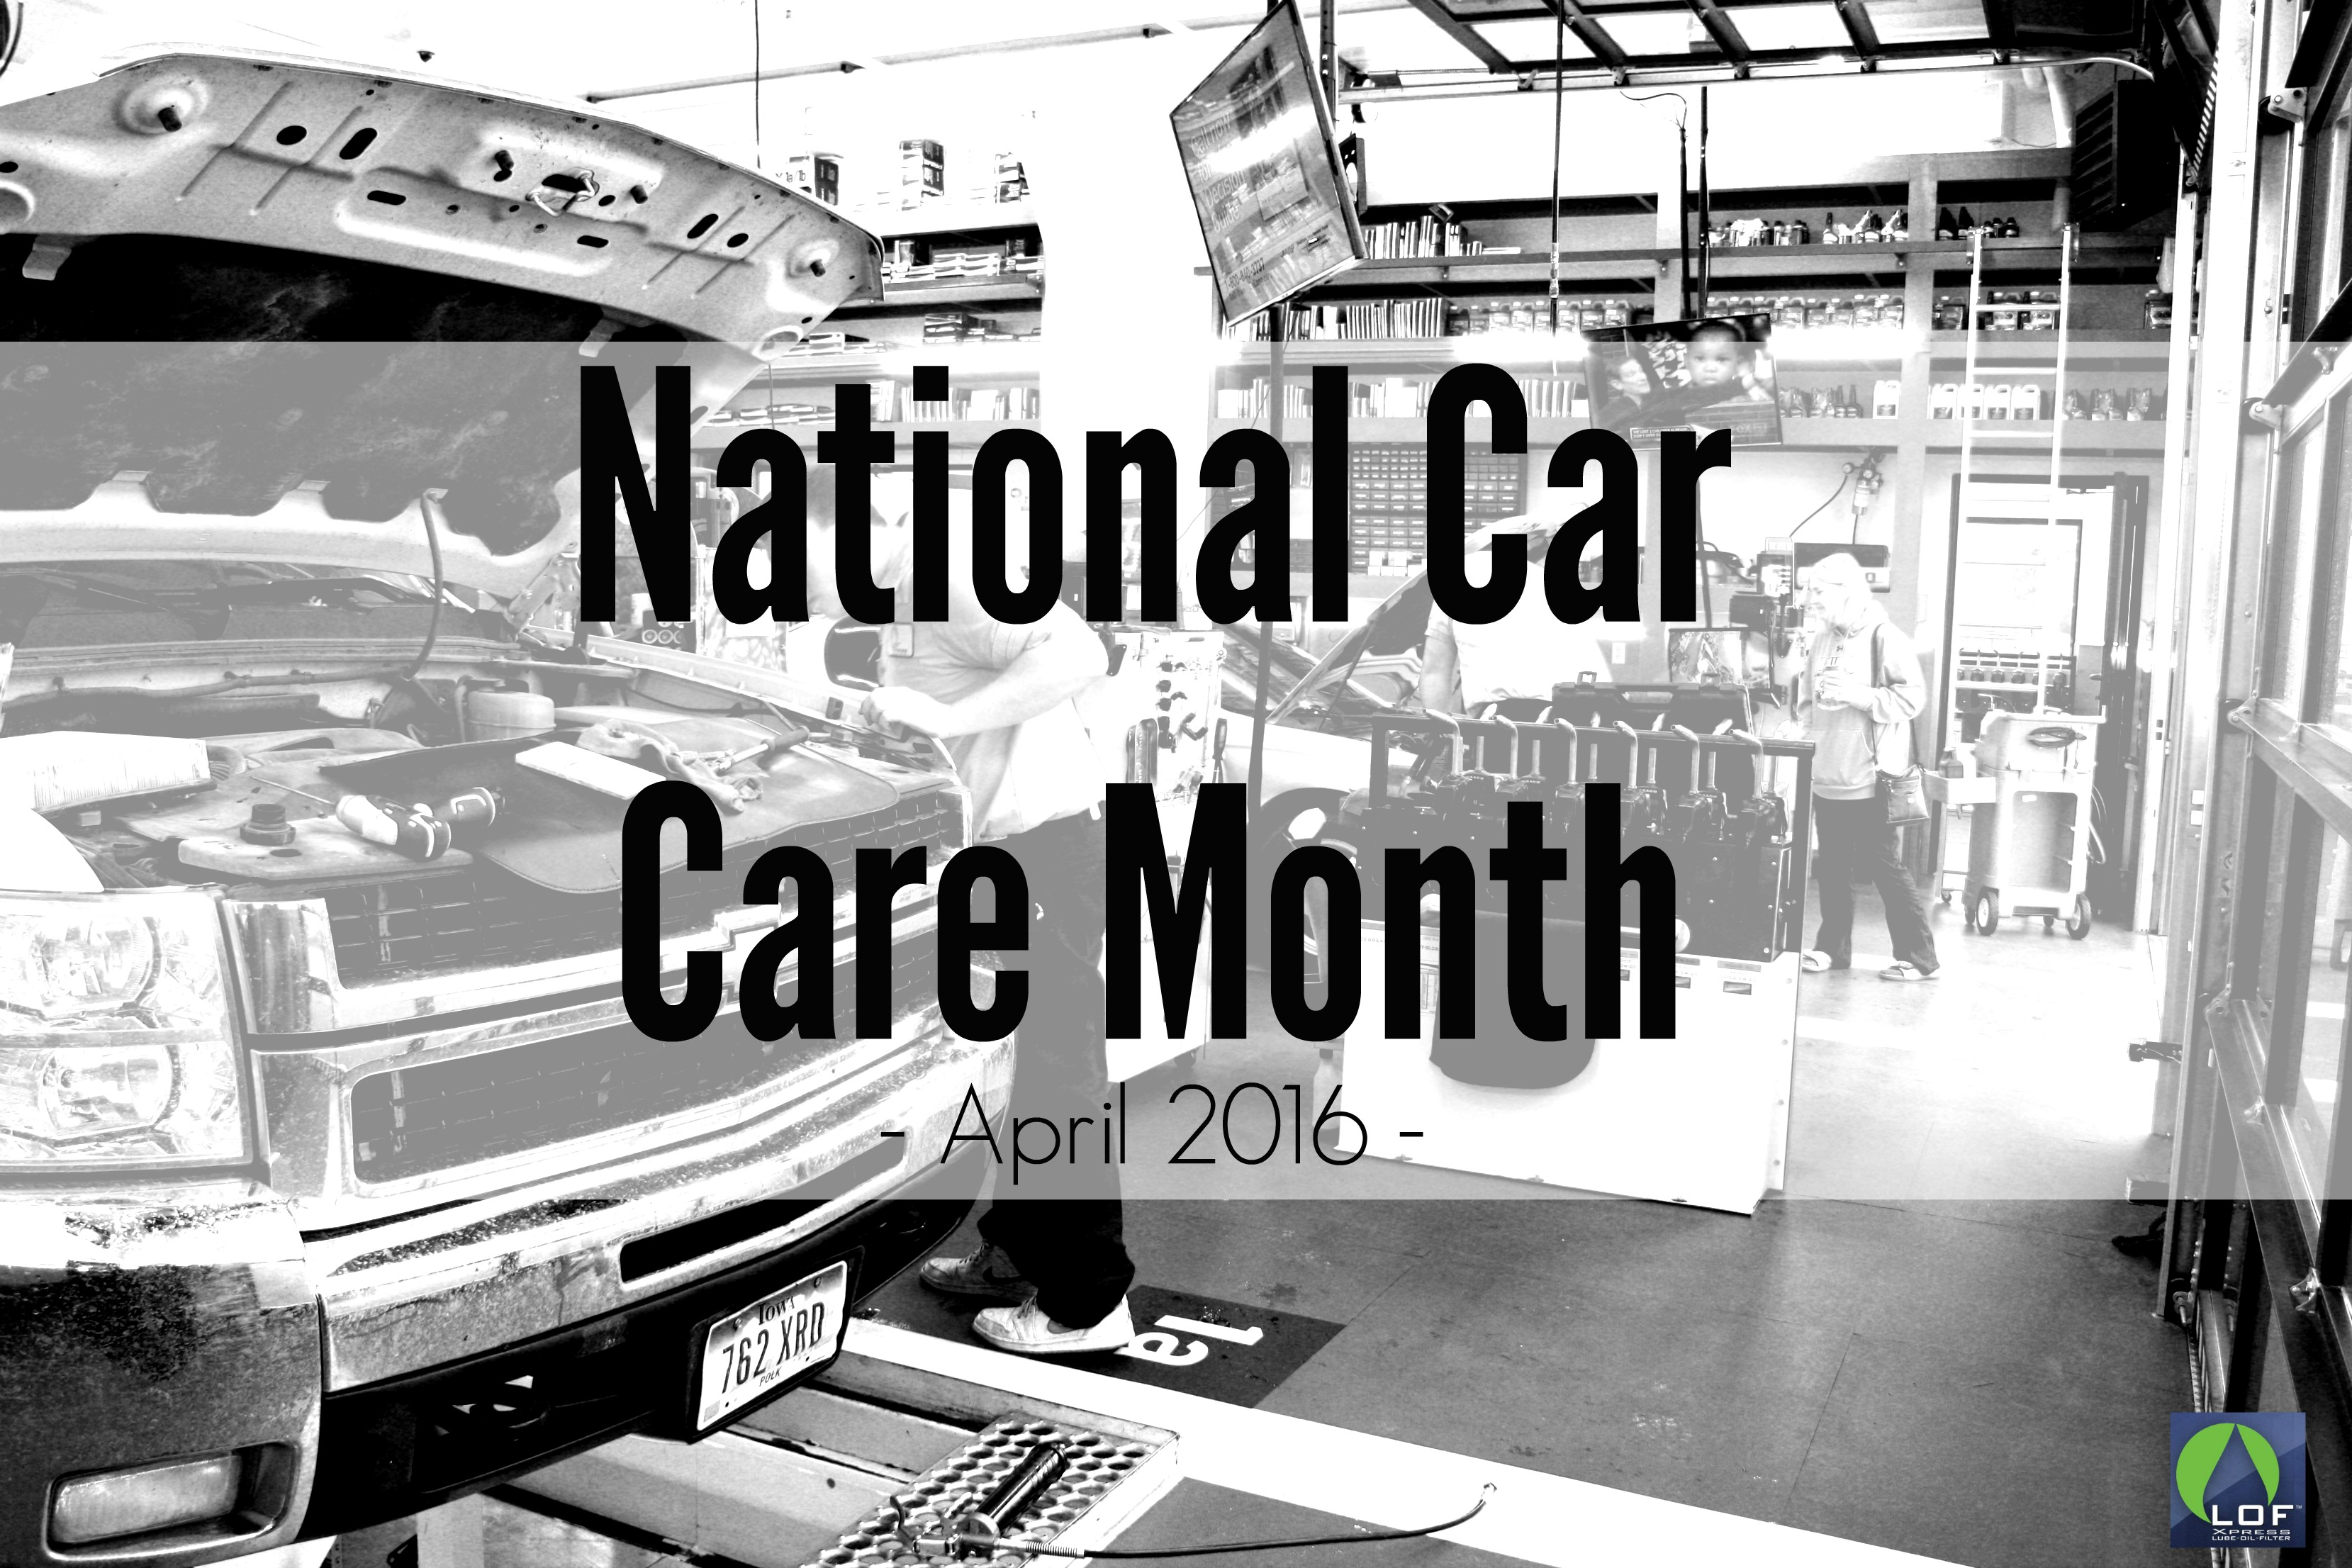 National Car Care Month Spring Into Action Oil Change Ames Lof